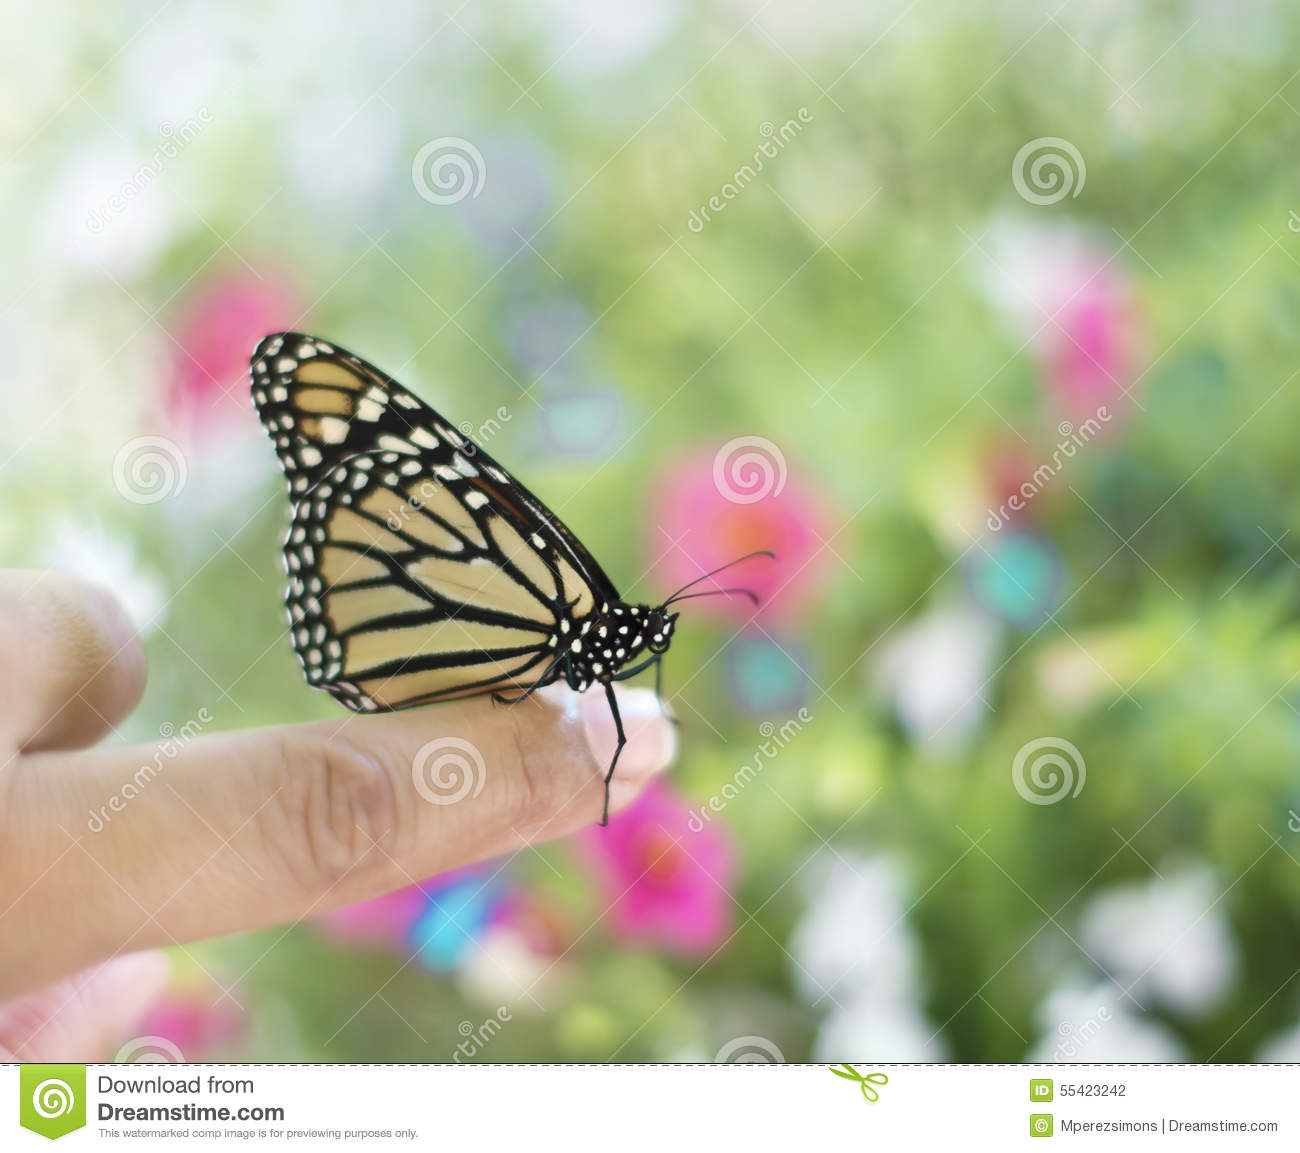 e666085f3 Monarch Butterfly On A Finger Stock Photo - Image of human, green ...